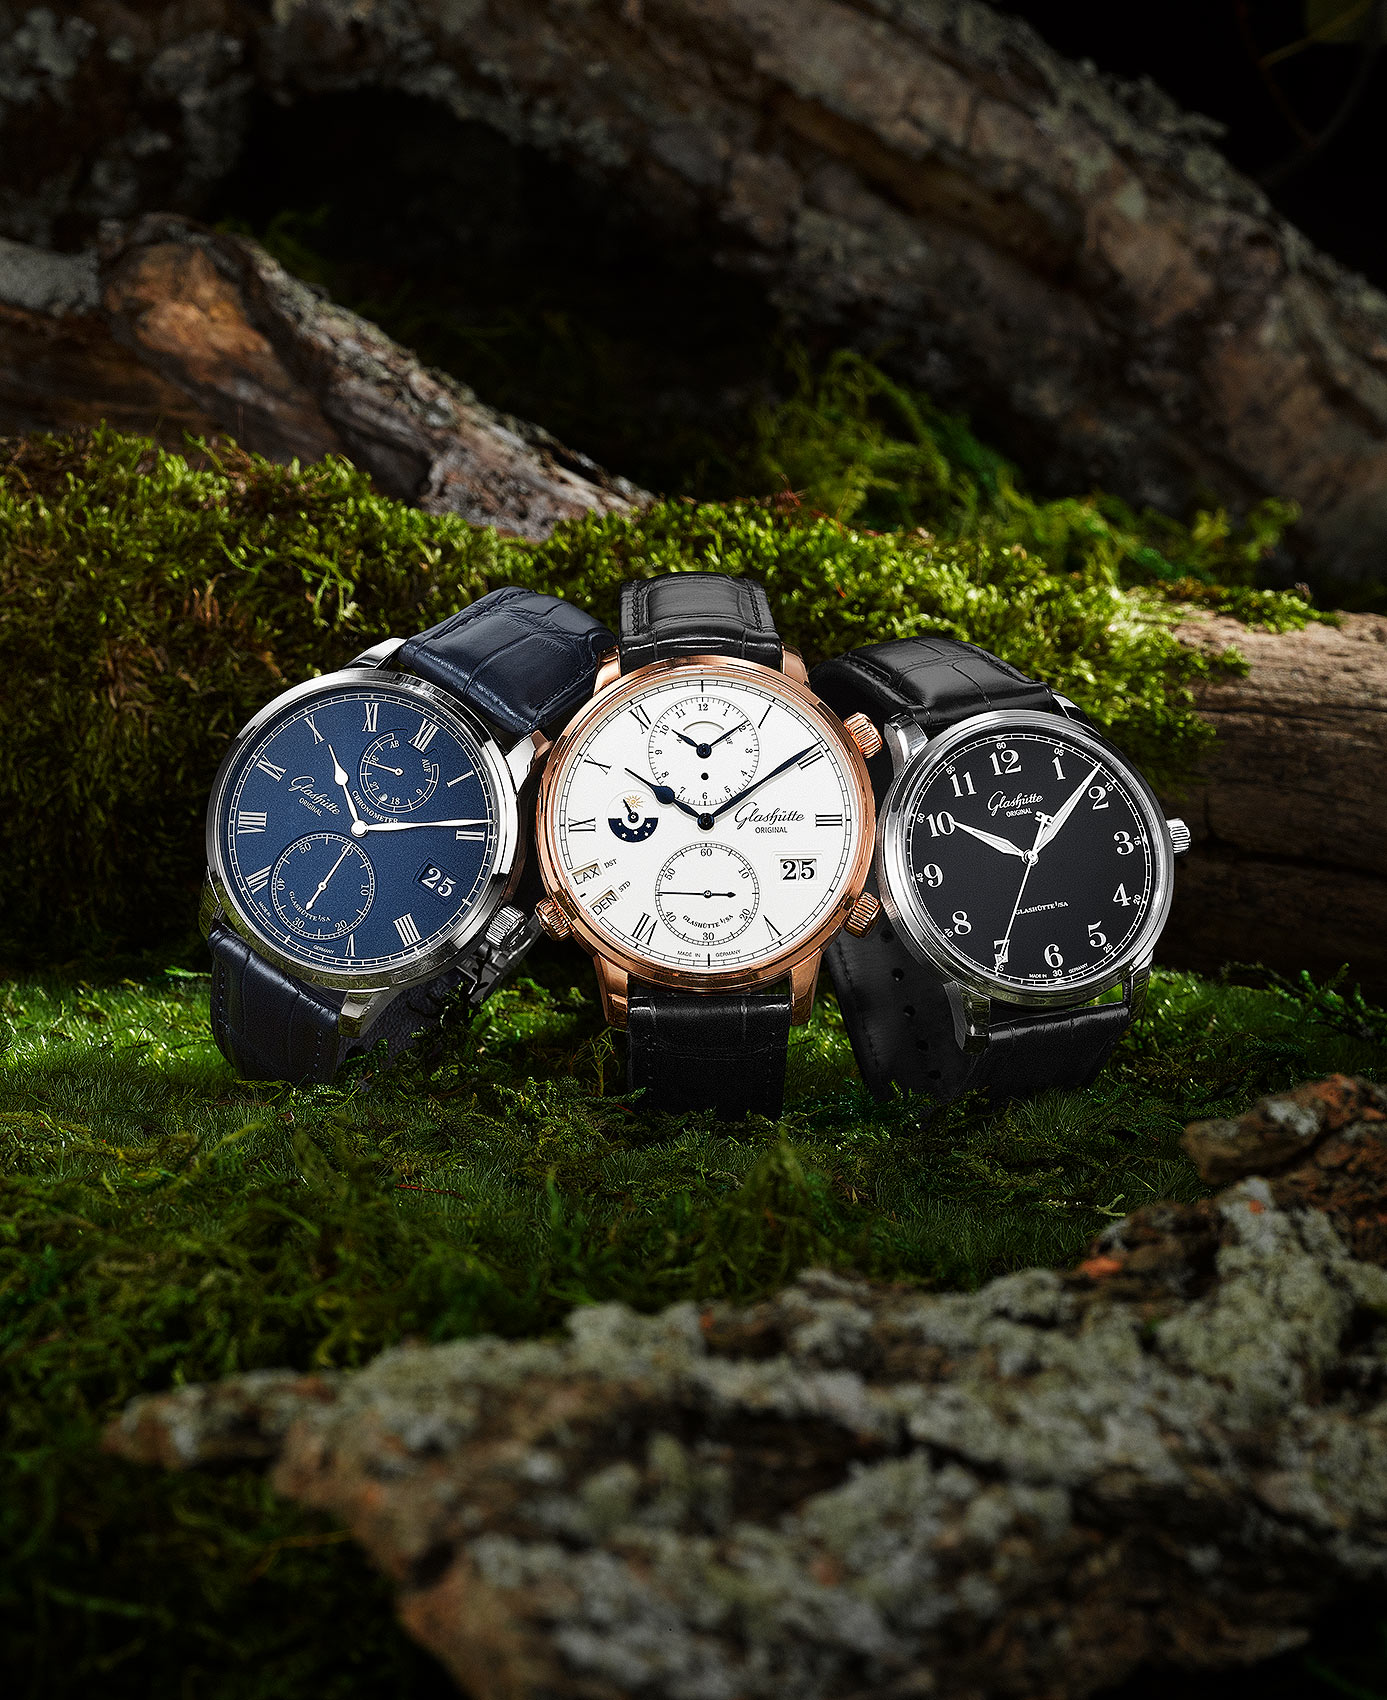 Glashutte Watches in the Woods